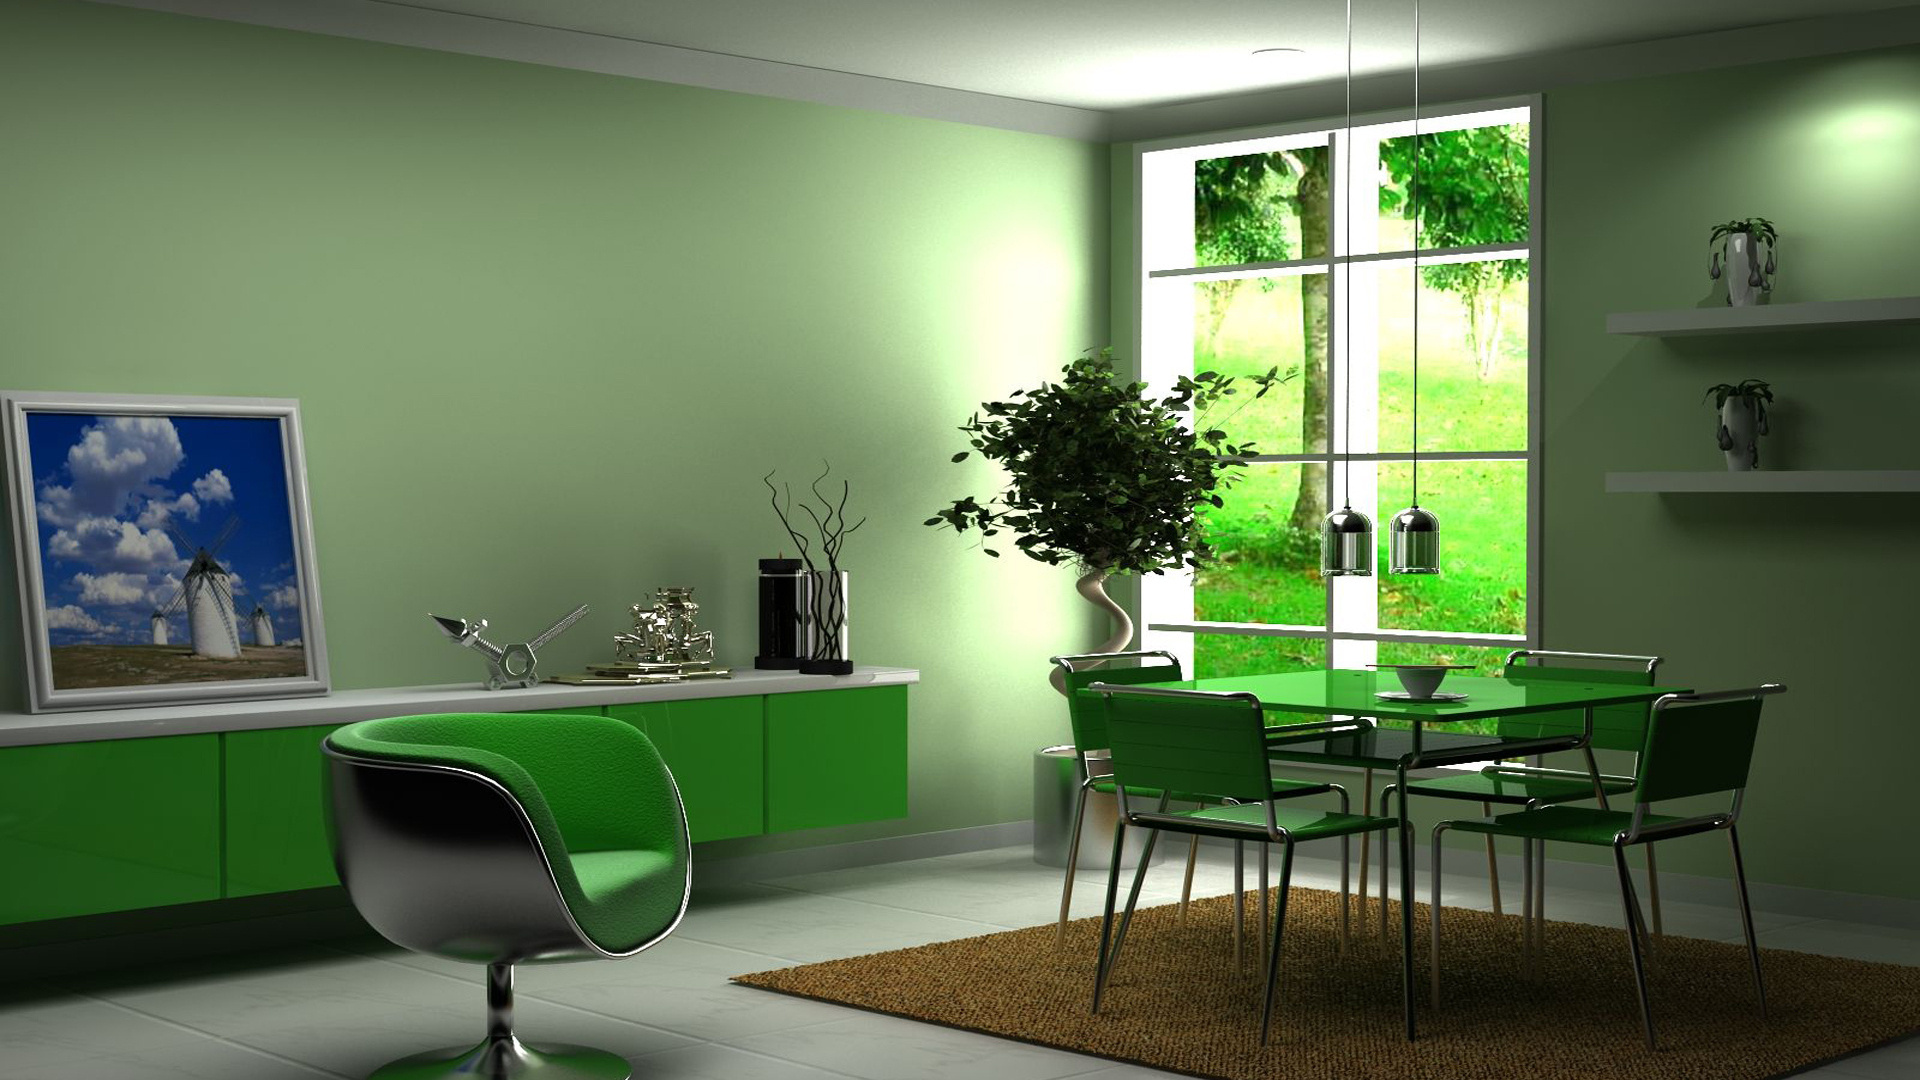 Home Interior Design house style paper 1920x1080 HD Wallpaper and 1920x1080